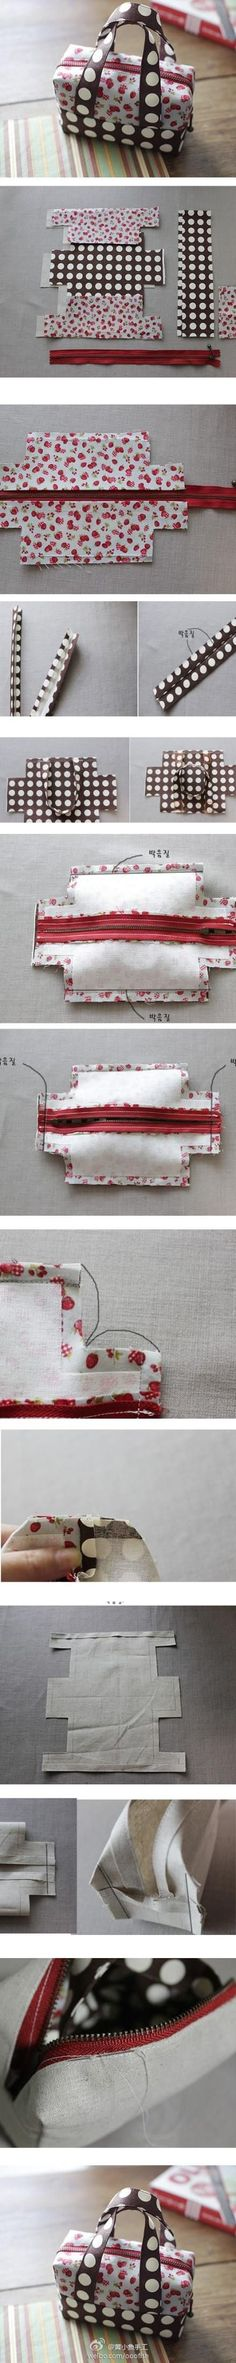 DIY Tutorial: DIY Accessories / DIY Bag - Bead